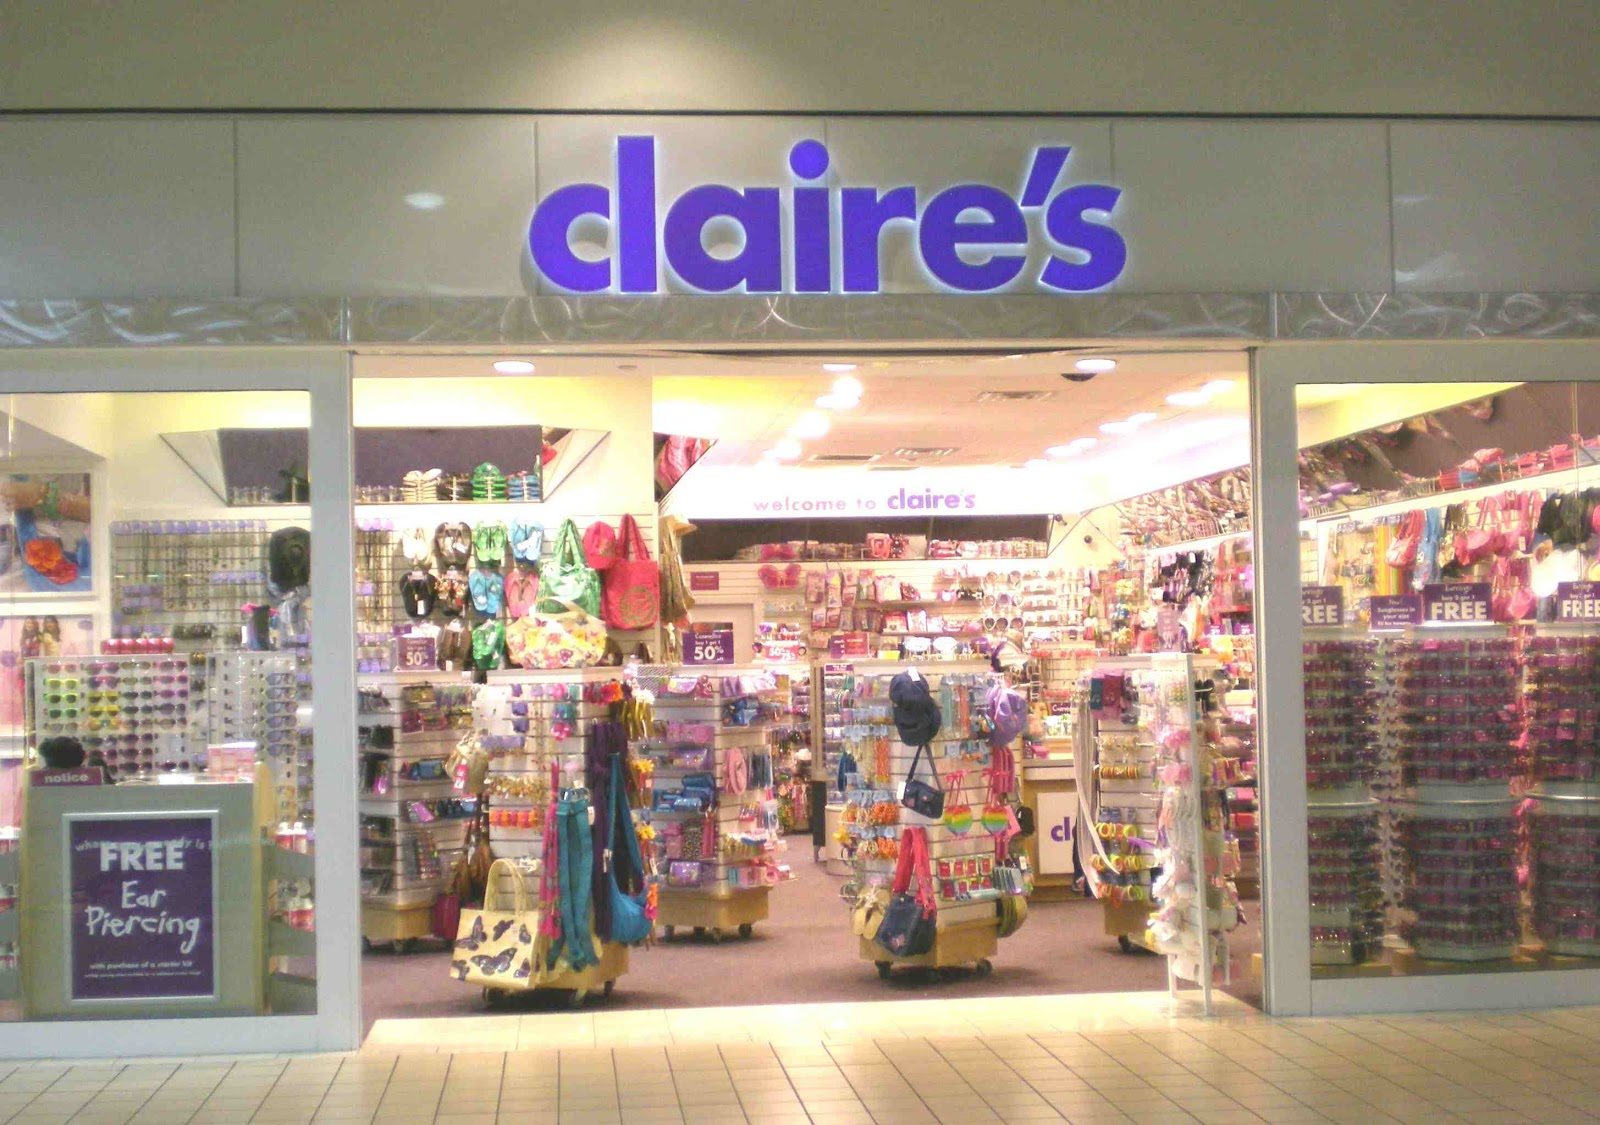 claires ear piercing coupon